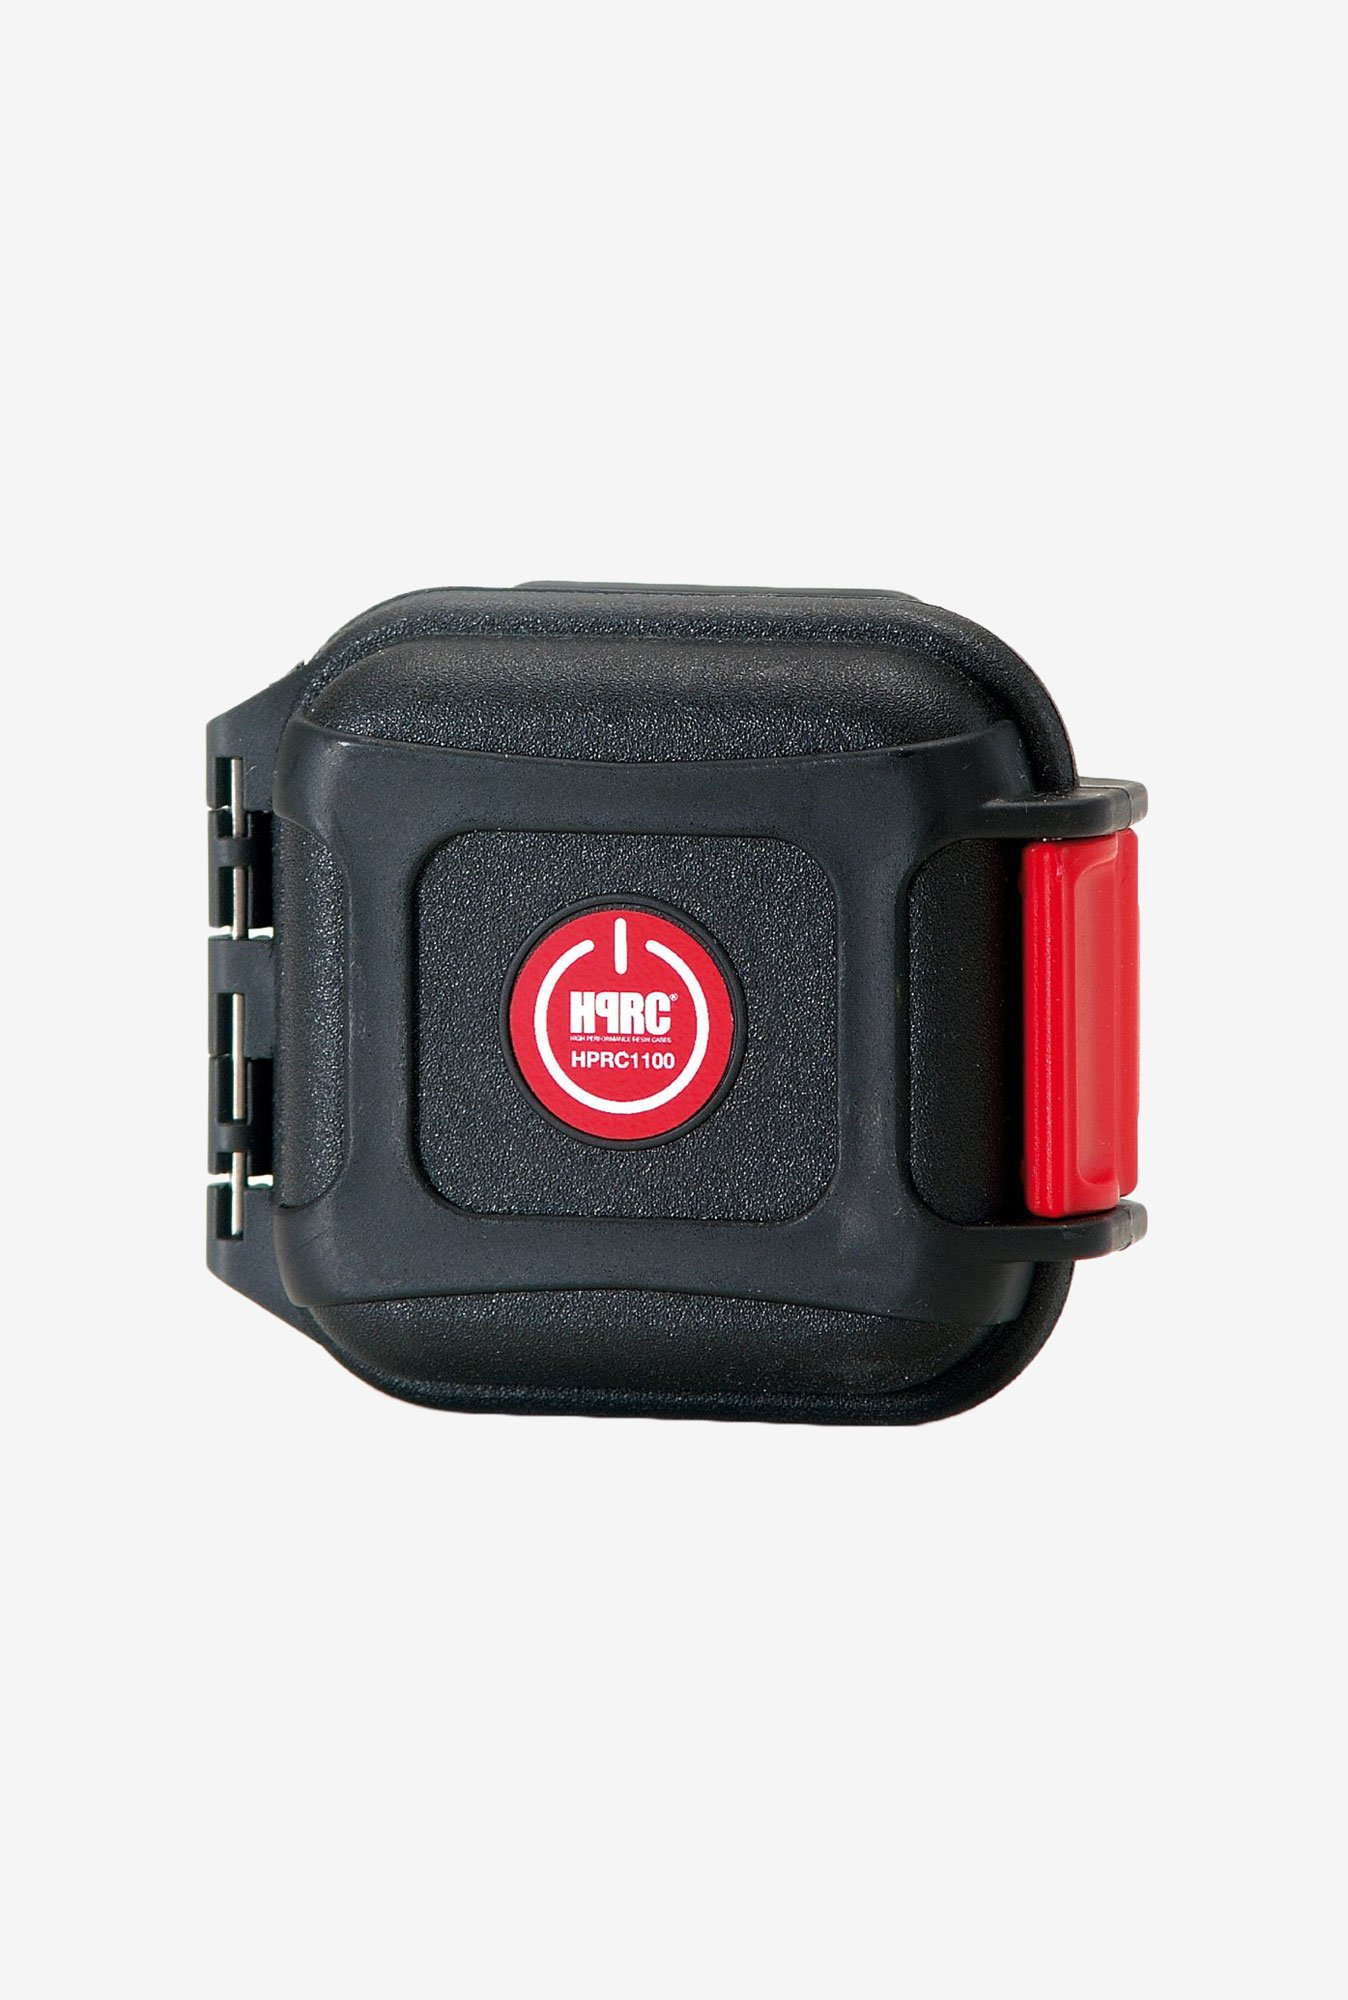 HPRC 1100M Memory Card Hard Case (Black)